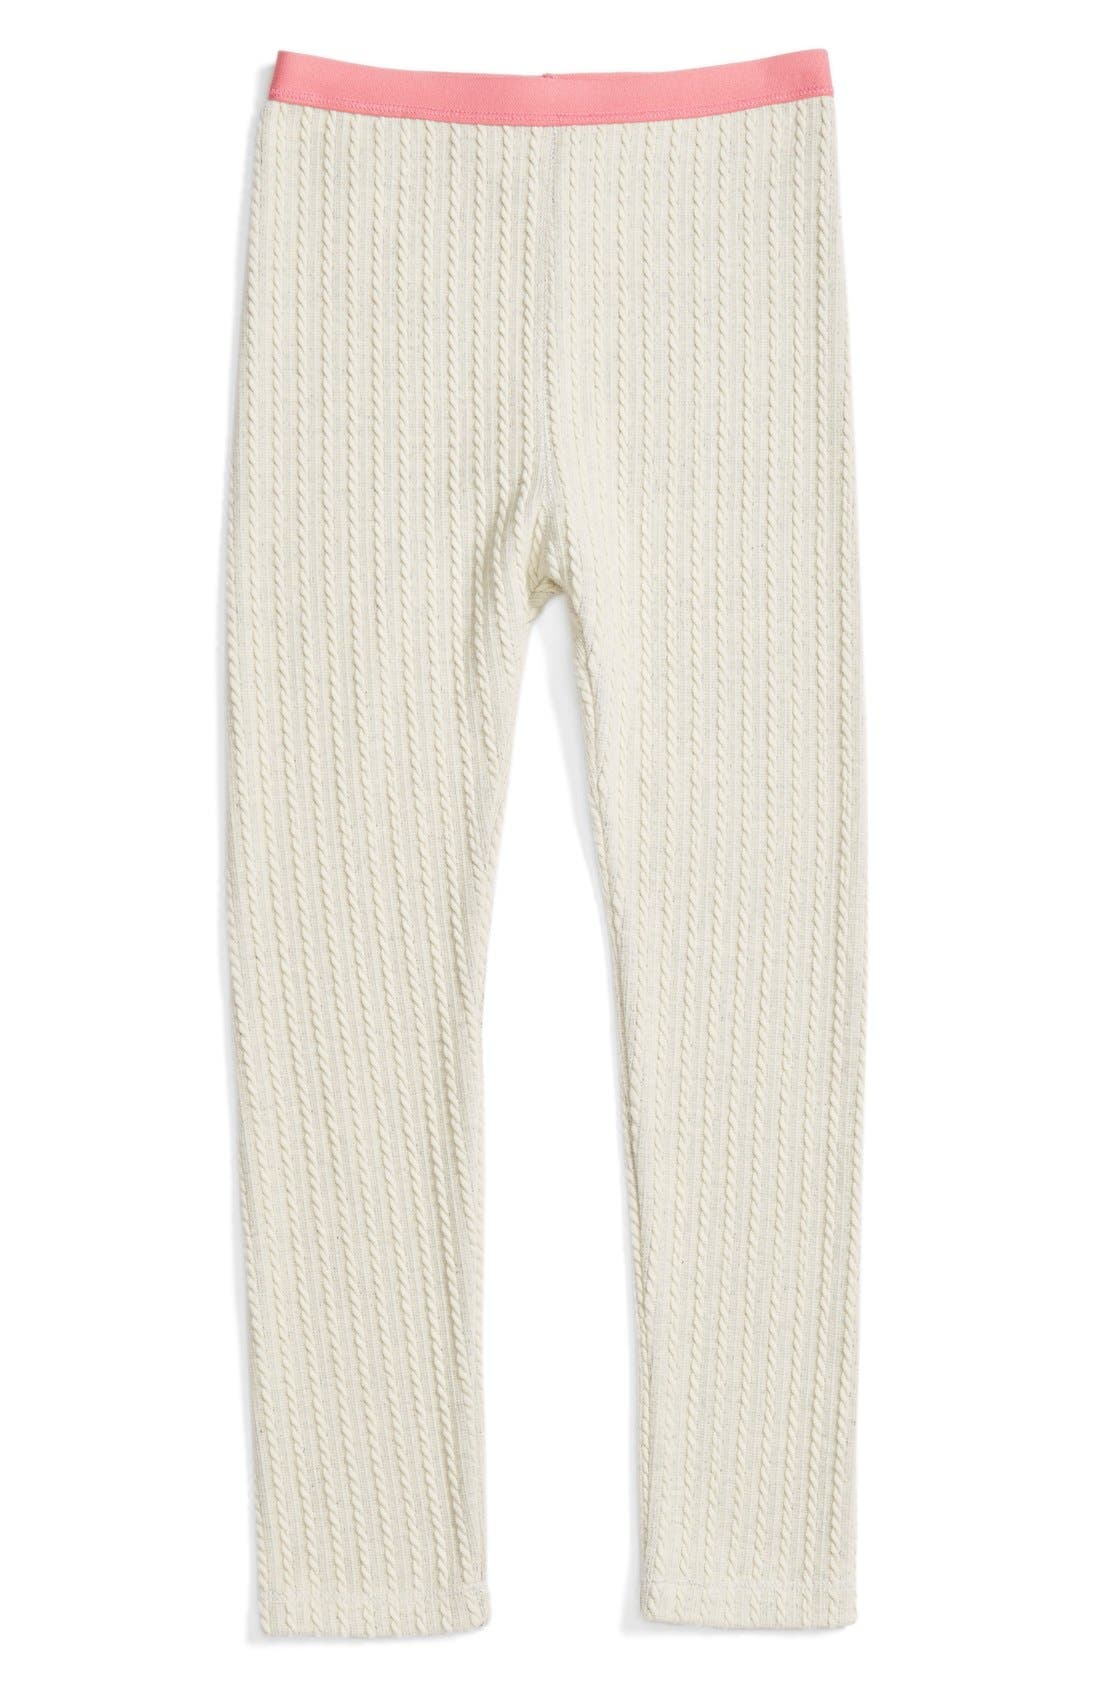 Cable Knit Leggings,                             Main thumbnail 1, color,                             Ivory Vanilla